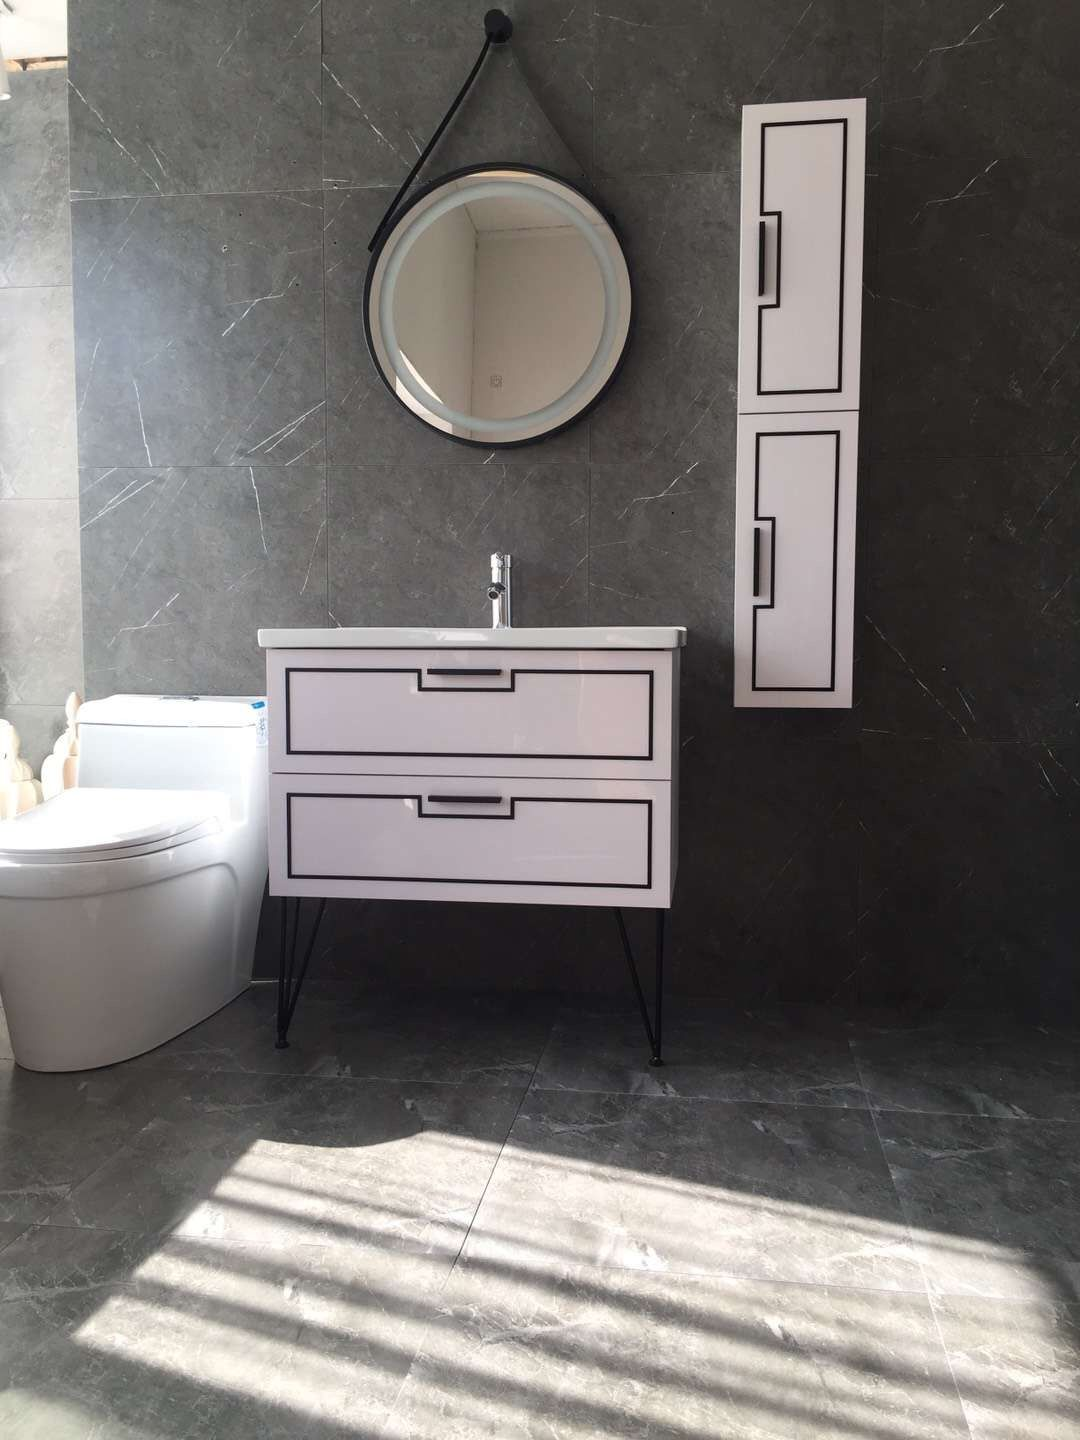 New Model Round Mirror Wall Mounted Vanity Cabinet Side Cabinet